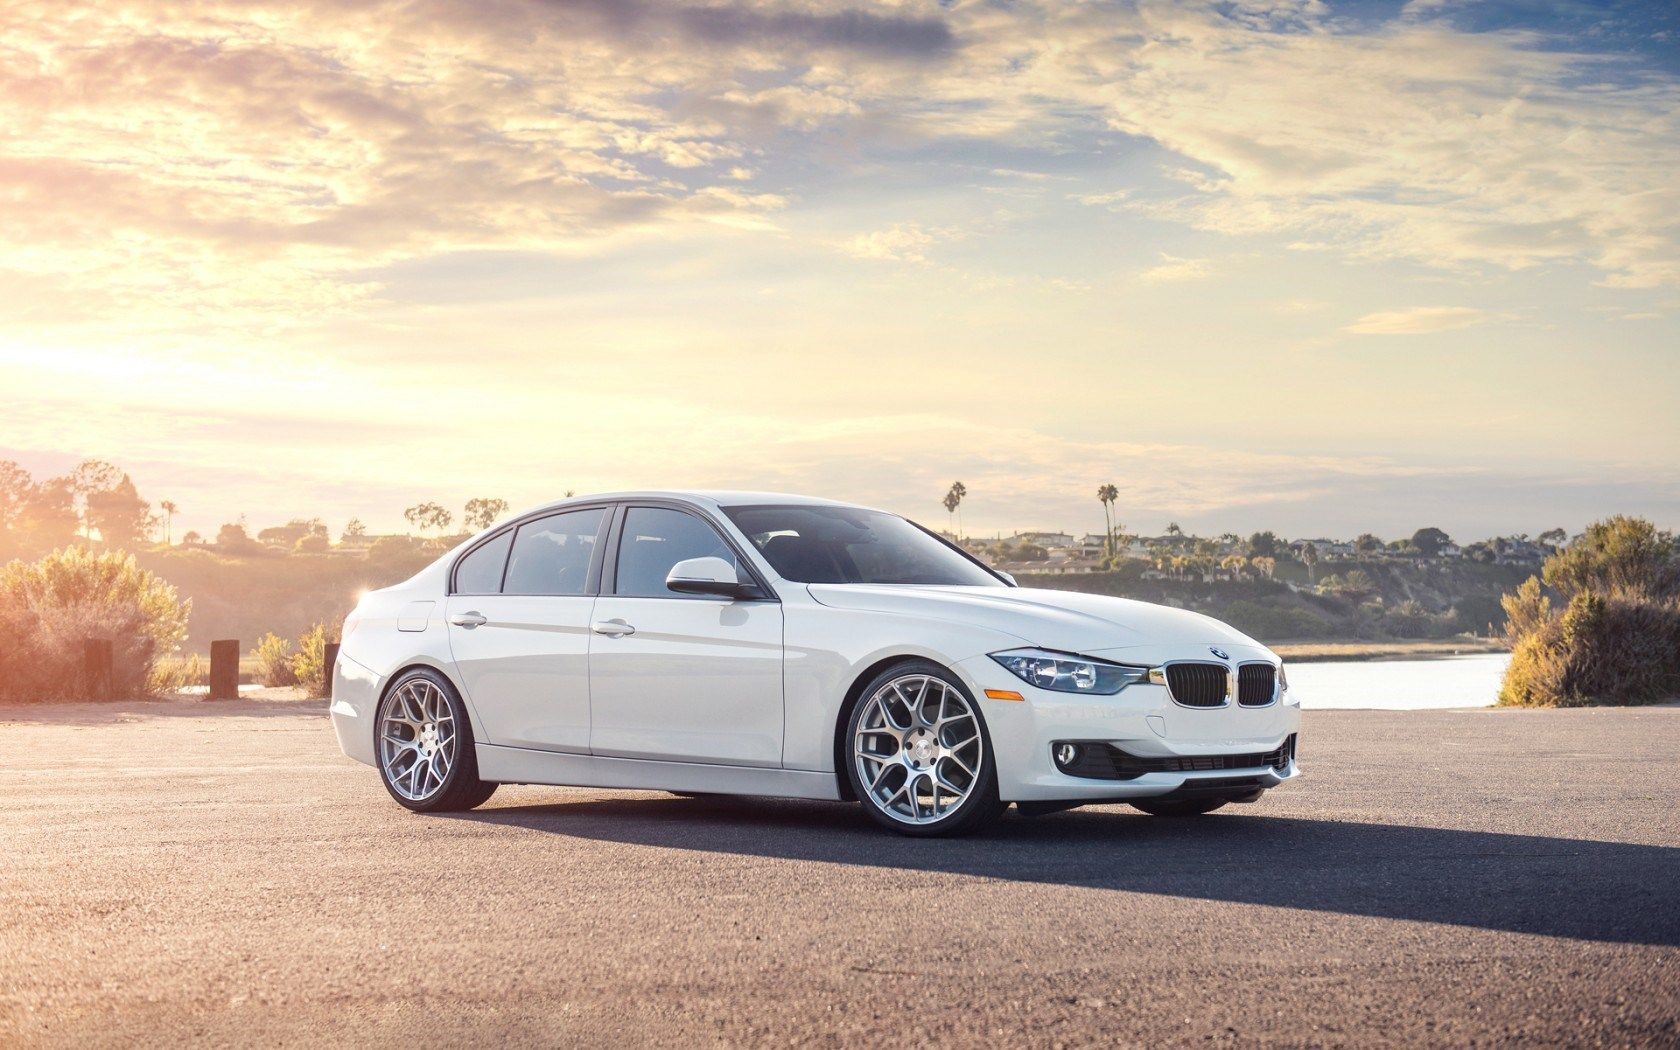 Bmw wallpaper on hd wallpapers pinterest bmw series wallpaper and wallpaper backgrounds